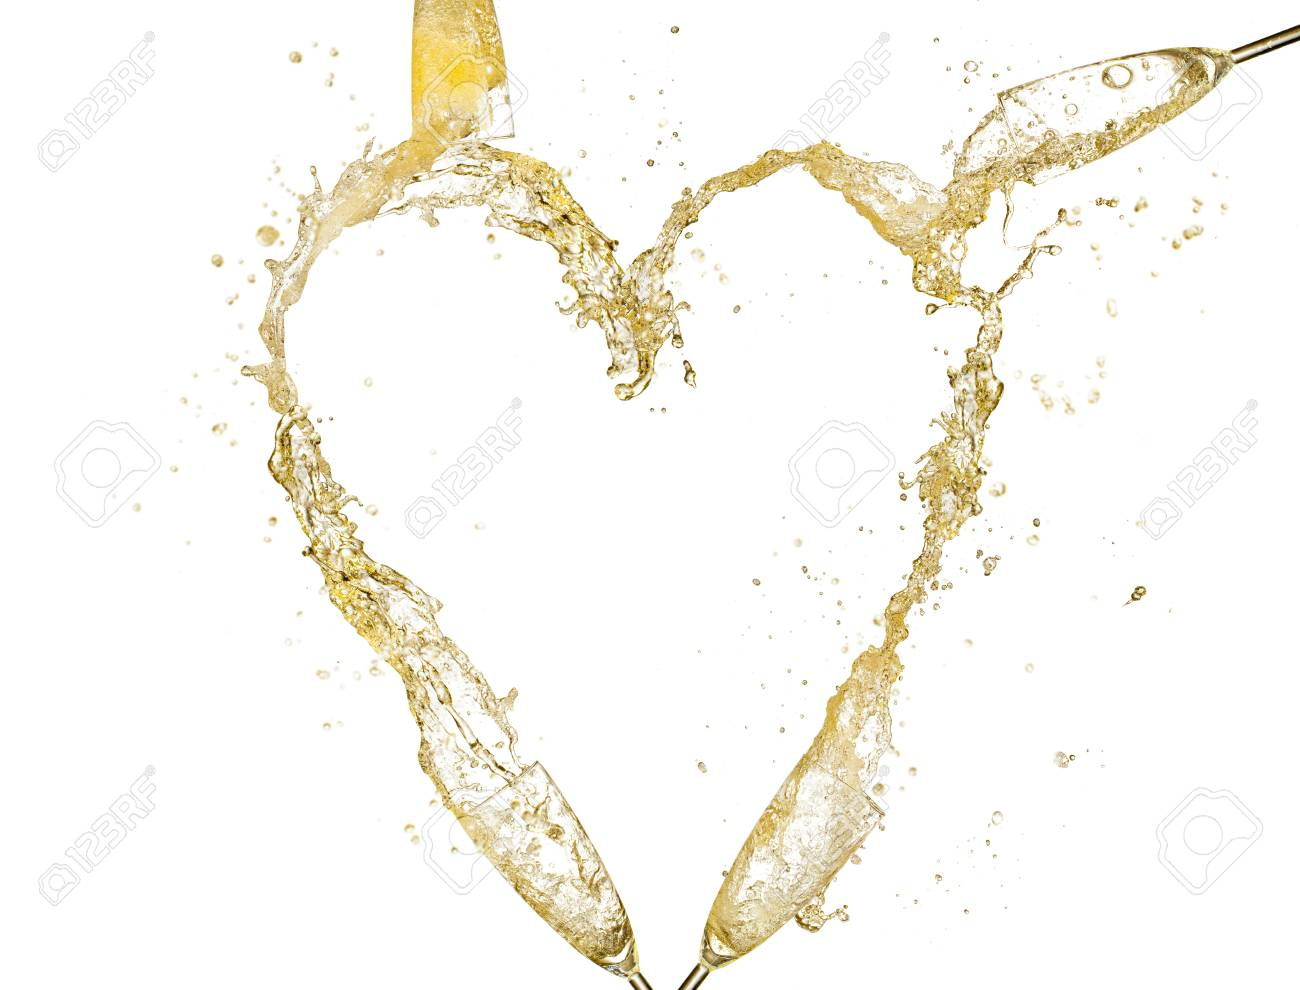 0617957268e2 Concept of heart symbol made of splashing champagne from glasses Isolated  on white background Stock Photo